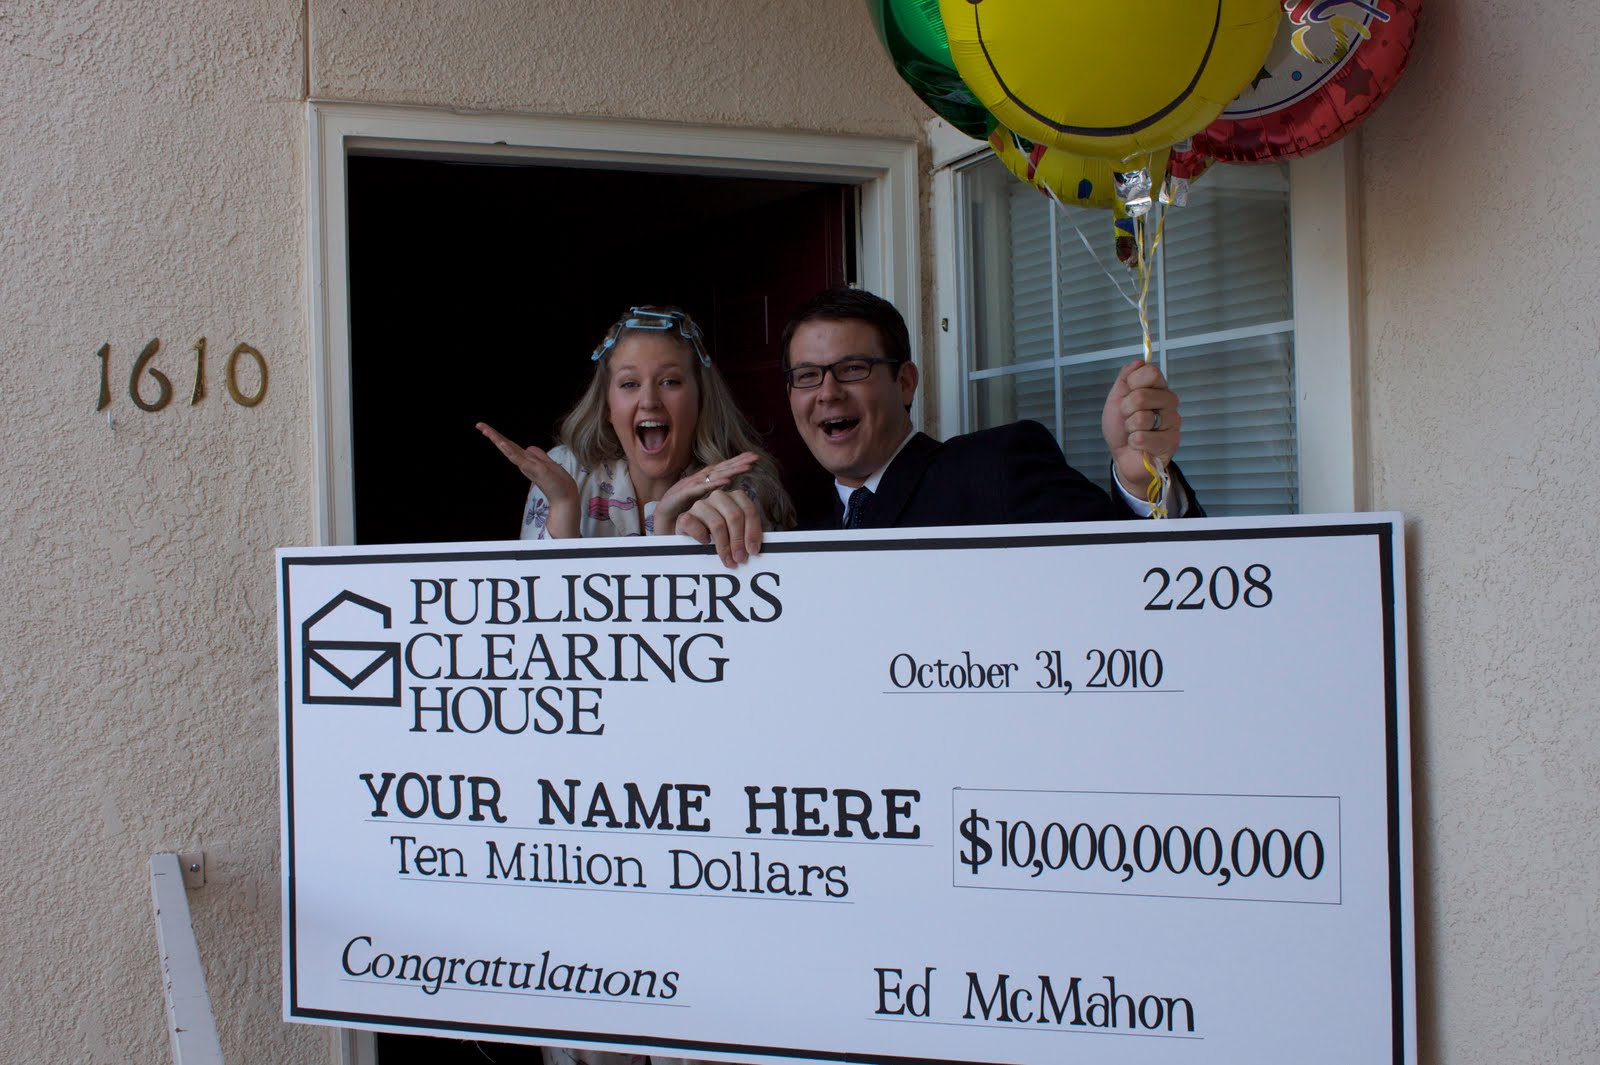 Publishers Clearing House Recent Winners http://hastan.myblog.it/archive/2011/10/26/publishers-clearing-house-winners.html